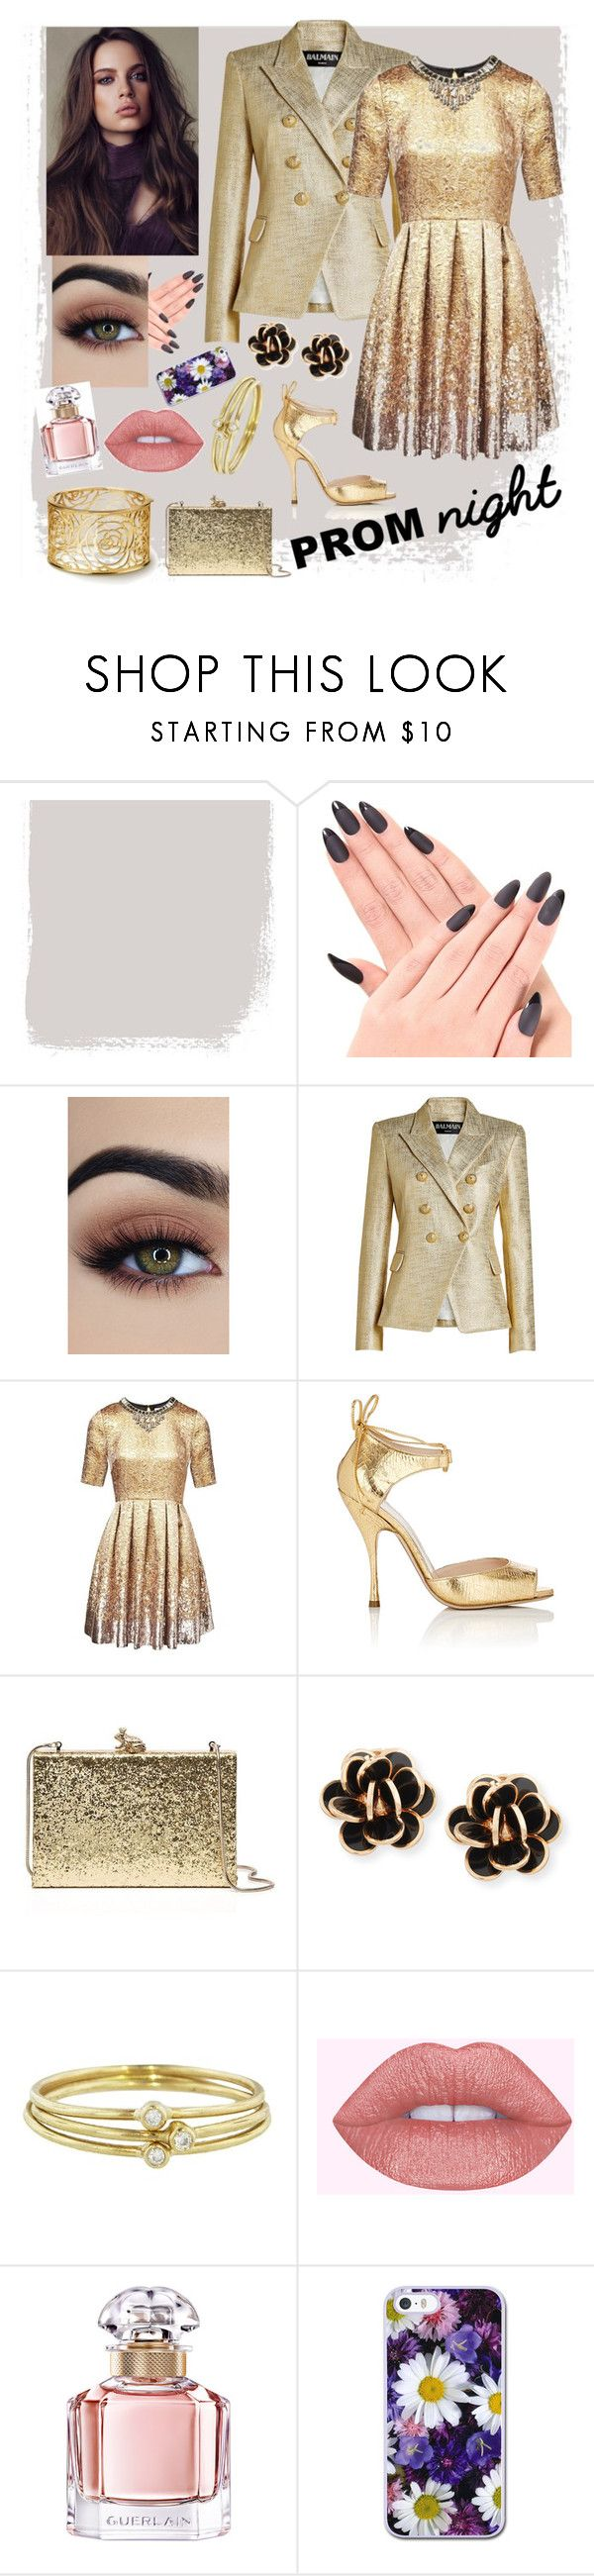 """""""A dazzling date."""" by tiffanyleannamoore ❤ liked on Polyvore featuring Balmain, Matthew Williamson, Nina Ricci, Kate Spade, Chantecler, Jennifer Meyer Jewelry and Guerlain"""